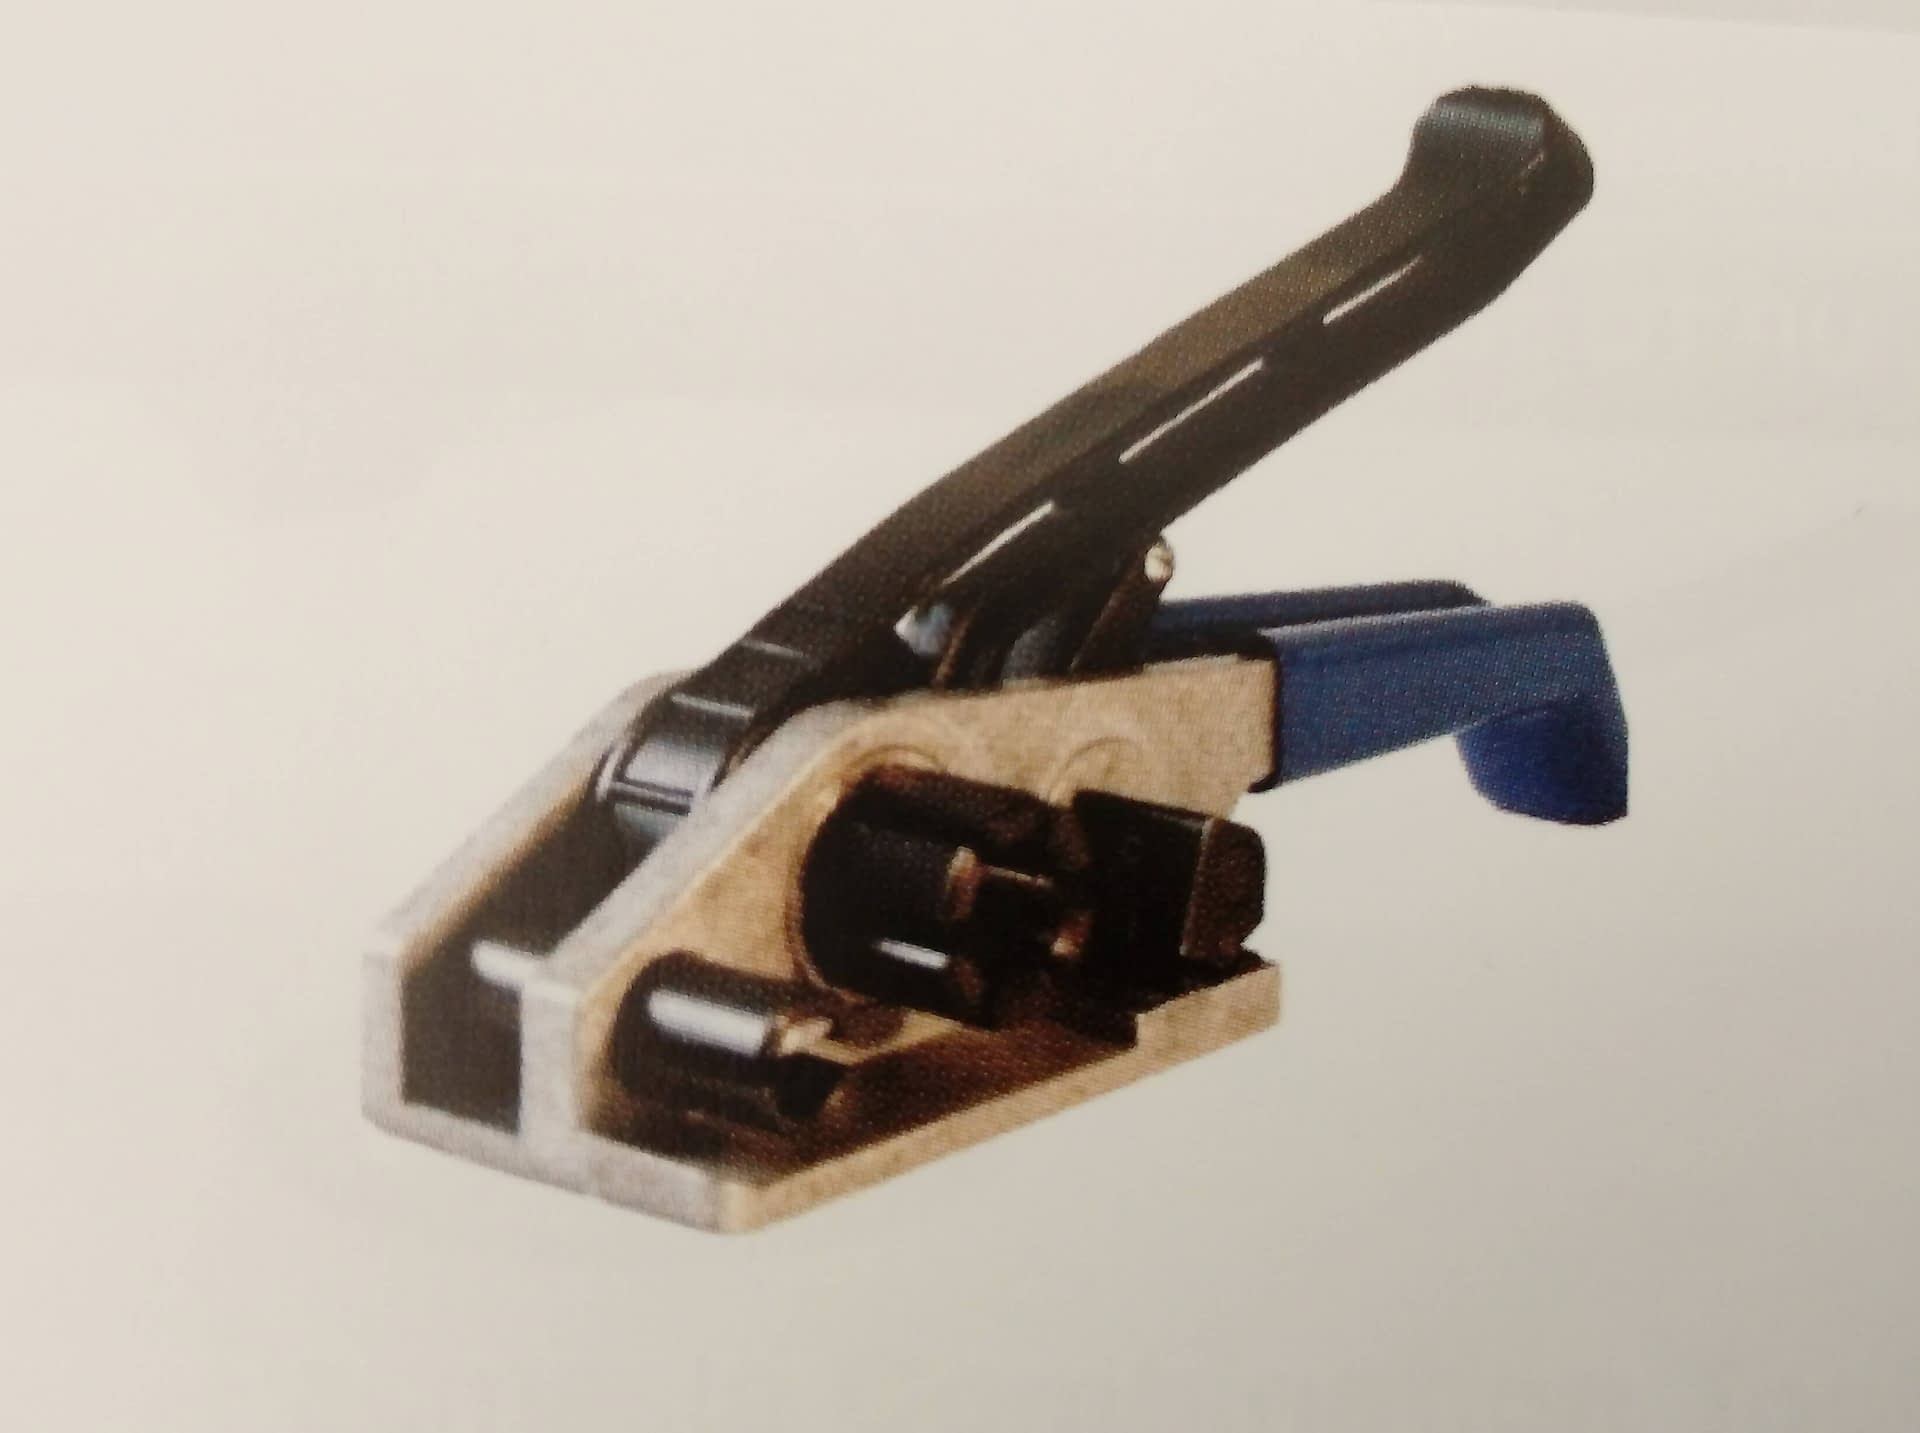 MANUAL STRAPPING SYSTEMS